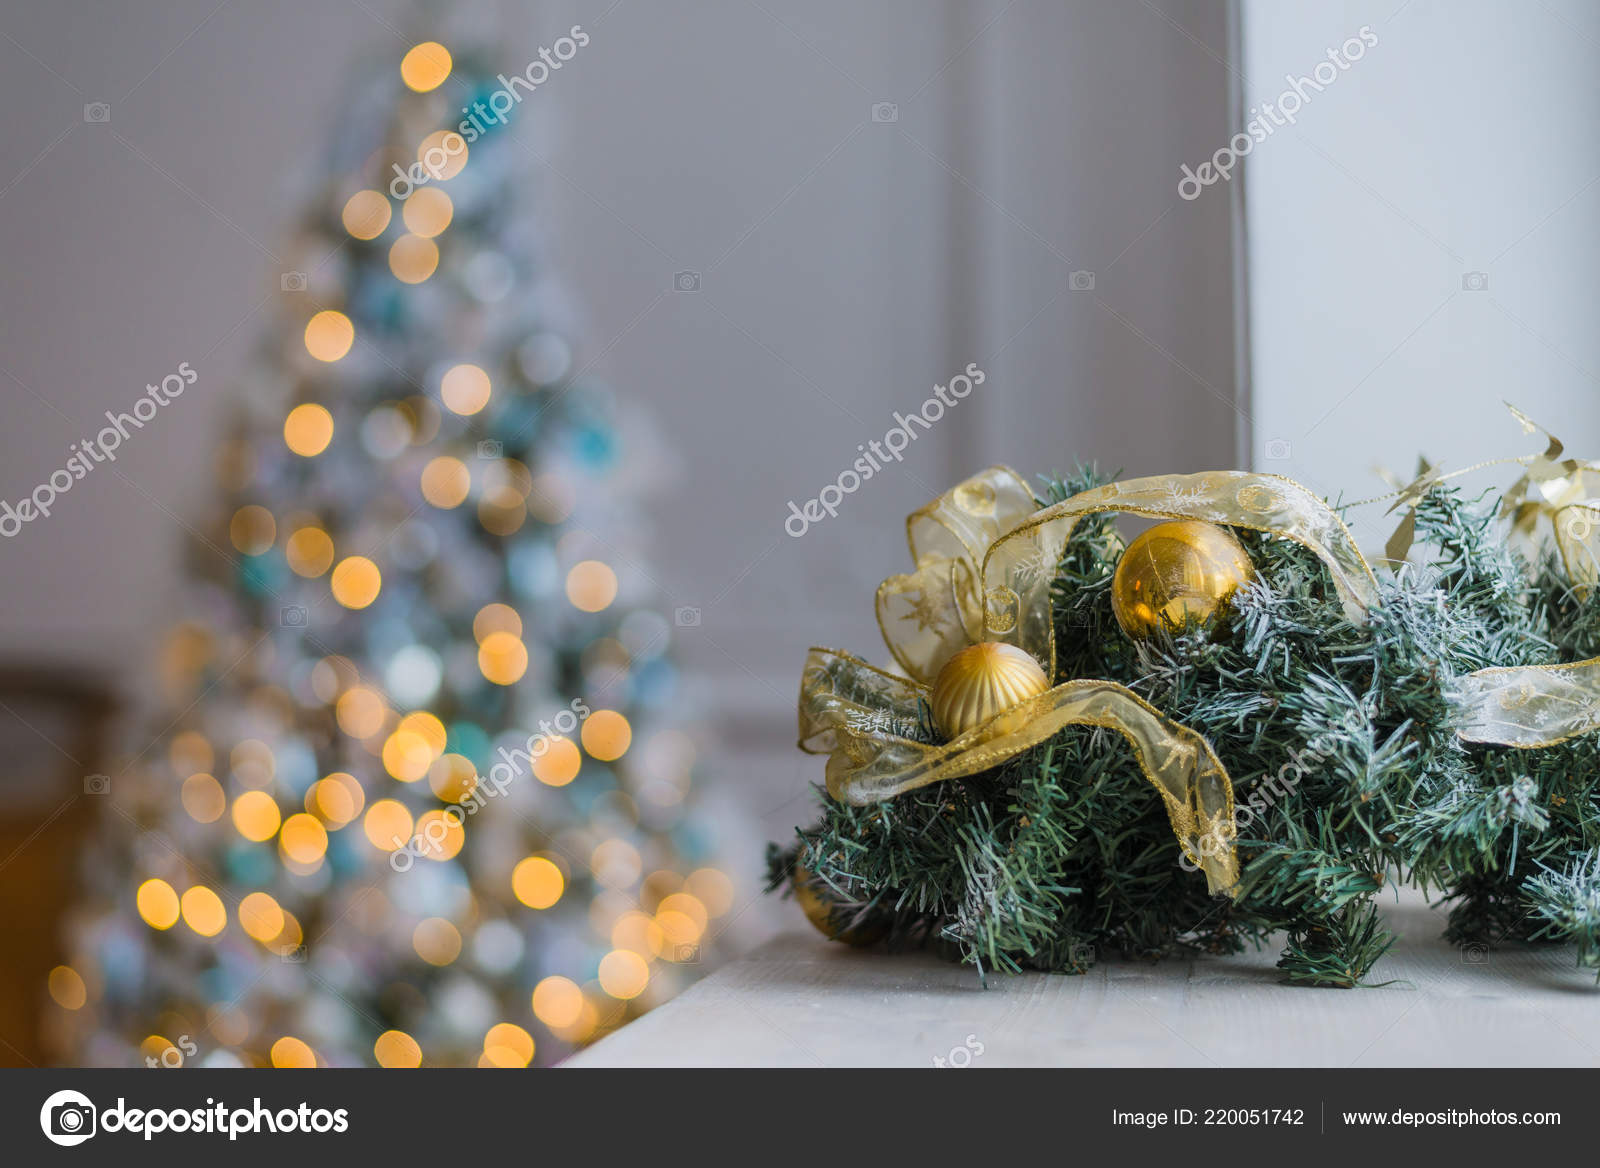 Gold Christmas Background Of De Focused Lights With Decorated Tree Photo By Romankosolapov